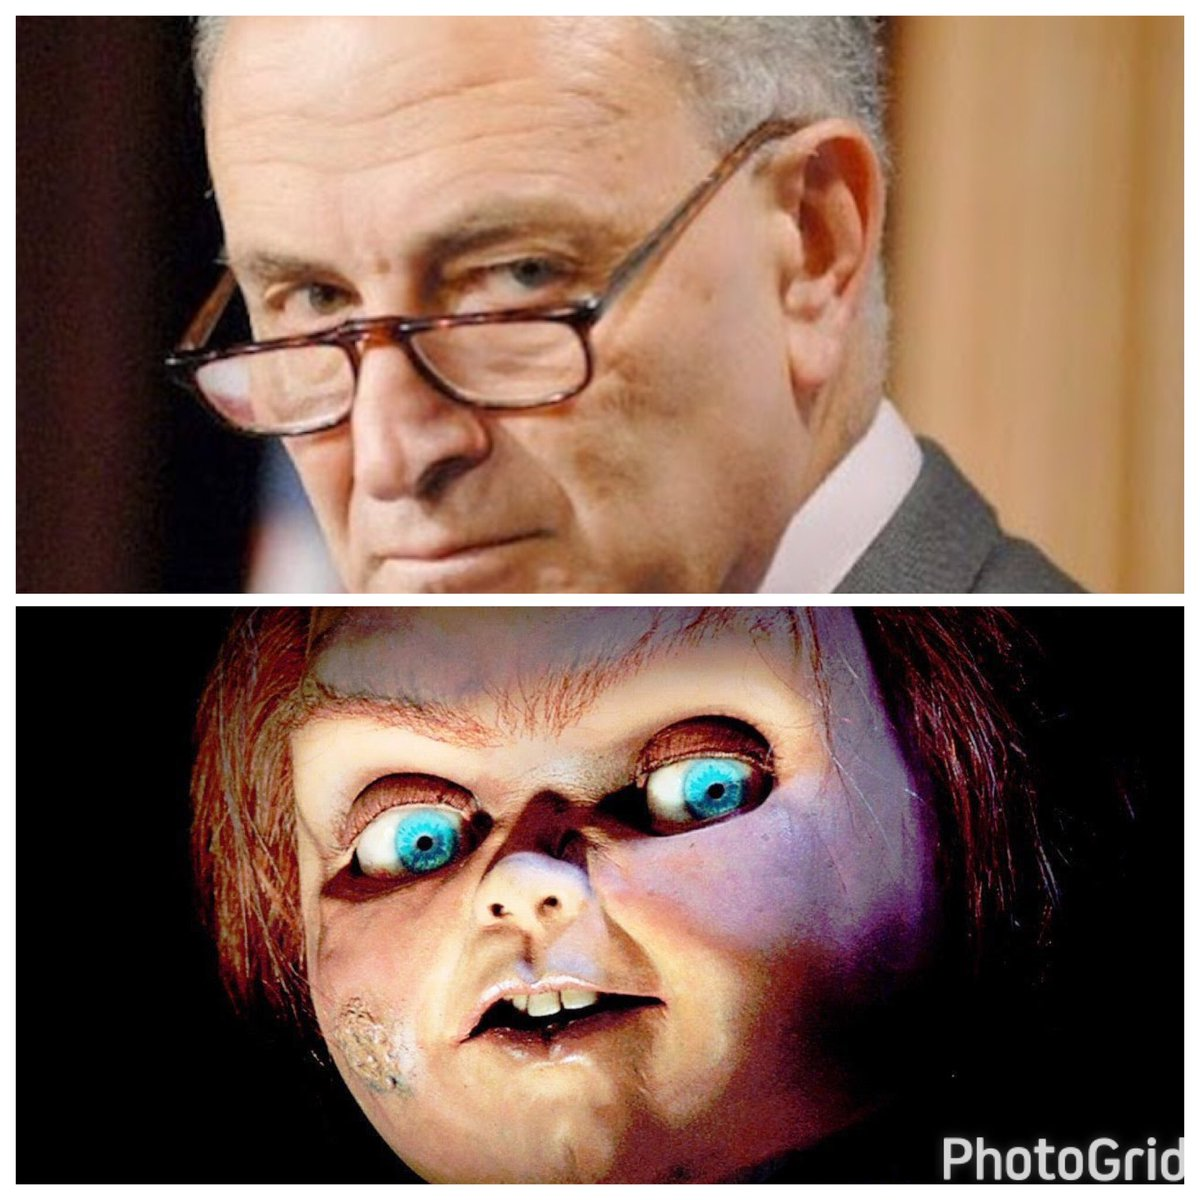 @SenSchumer is a JERK. He turned into Chucky, BULLYING a lady at dinner because she voted for #DJT!  #hypocrisy   http://www. foxnews.com/politics/2017/ 03/27/schumer-goes-off-on-trump-supporter-at-nyc-restaurant-witness-says.html &nbsp; … <br>http://pic.twitter.com/14q8KcweGQ